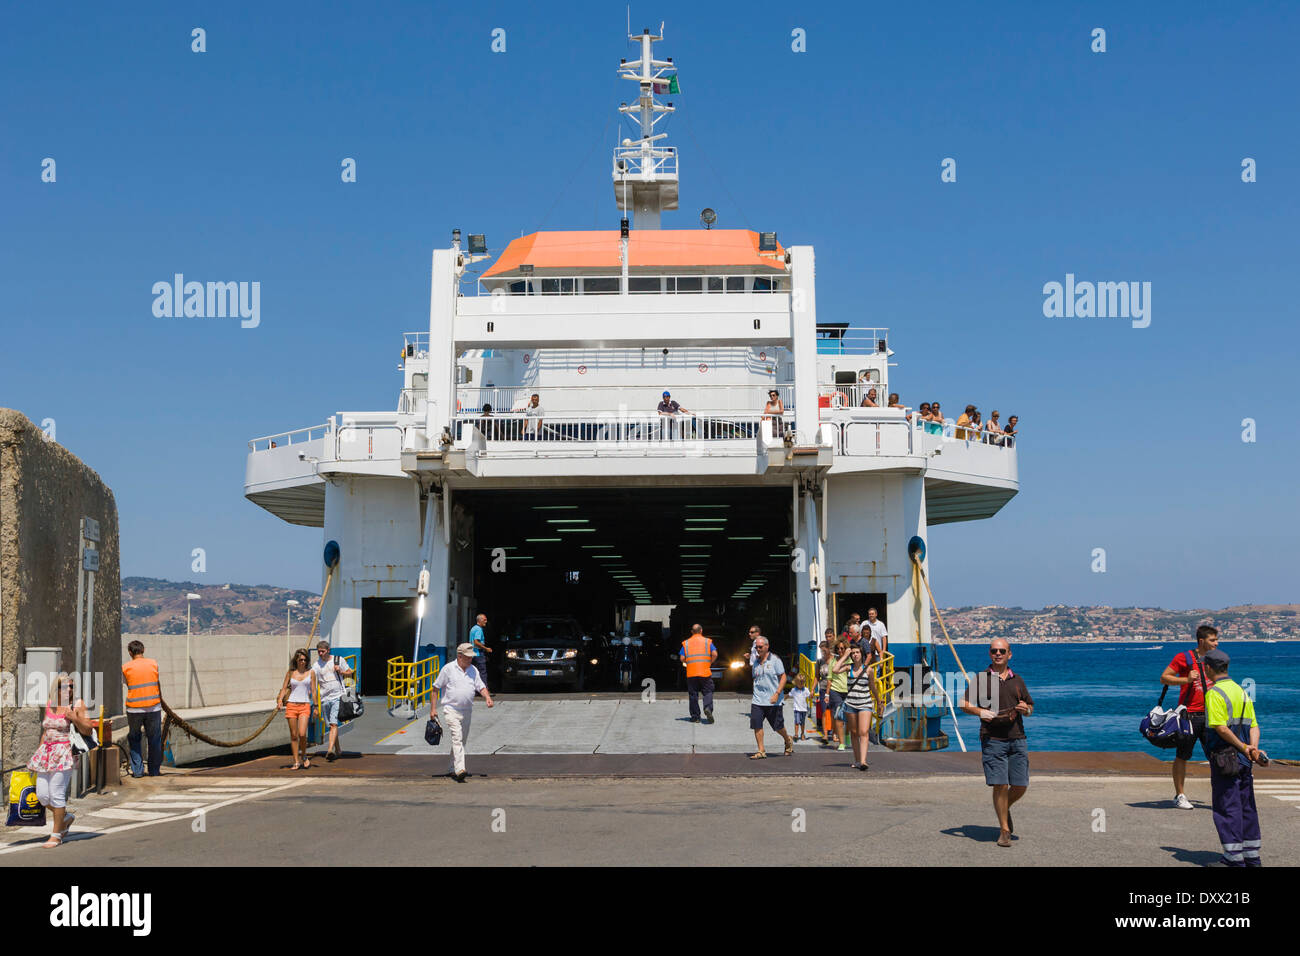 Ferry boat at Reggio di Calabria ferry station, Strait of Messina, Calabria, Southern Italy, Italy - Stock Image